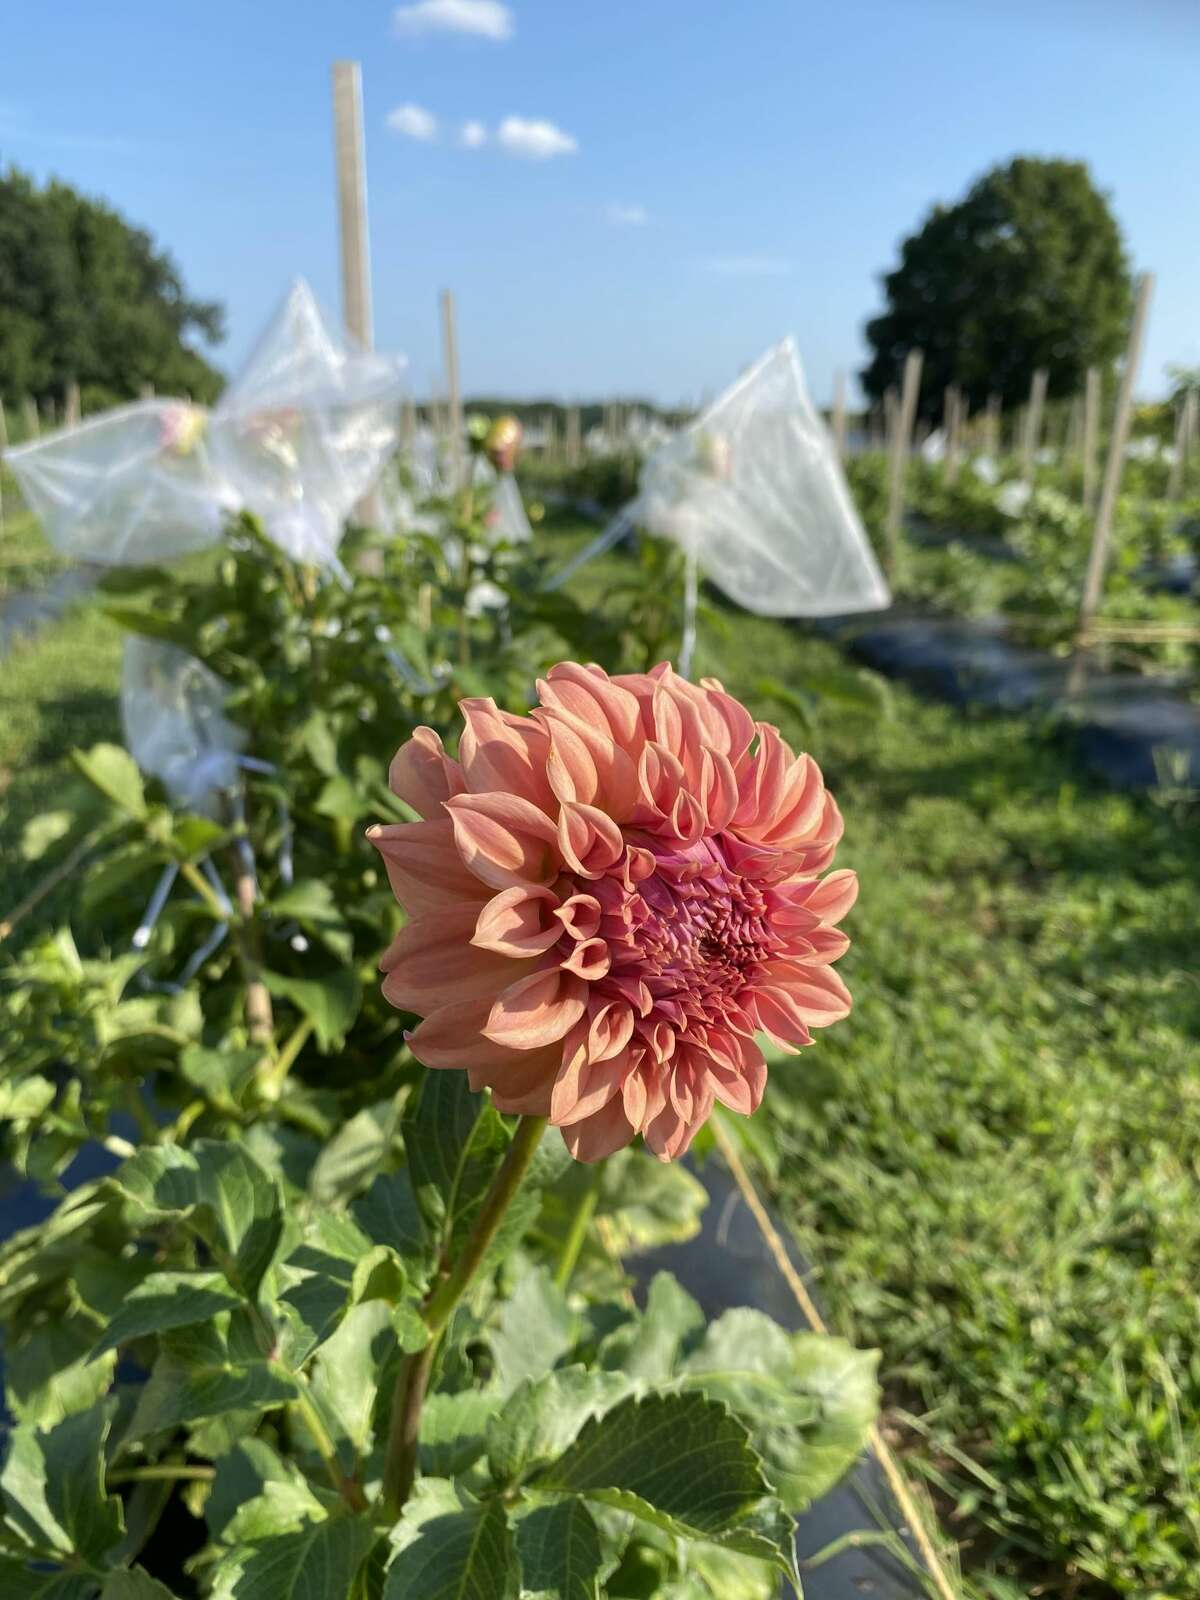 A dahlia at Willow View Farm in West Suffield, Conn., a pick your own flower farm owned by former WFSB host Julie Harrison.